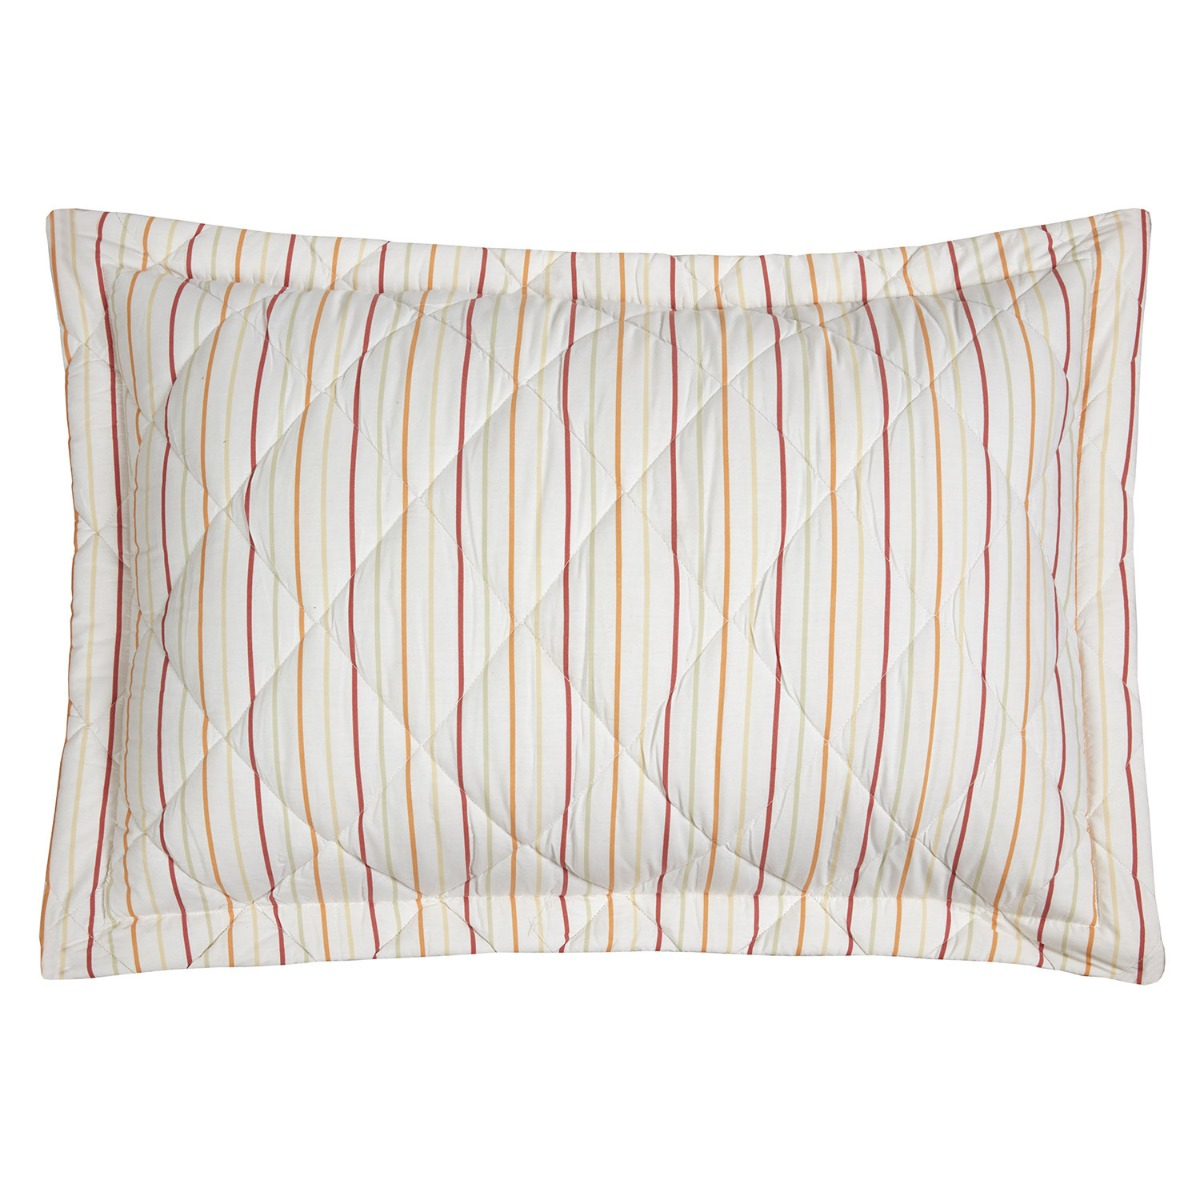 Bloomsbury Autumn Quilted Oxford Pillowcases (Pair)